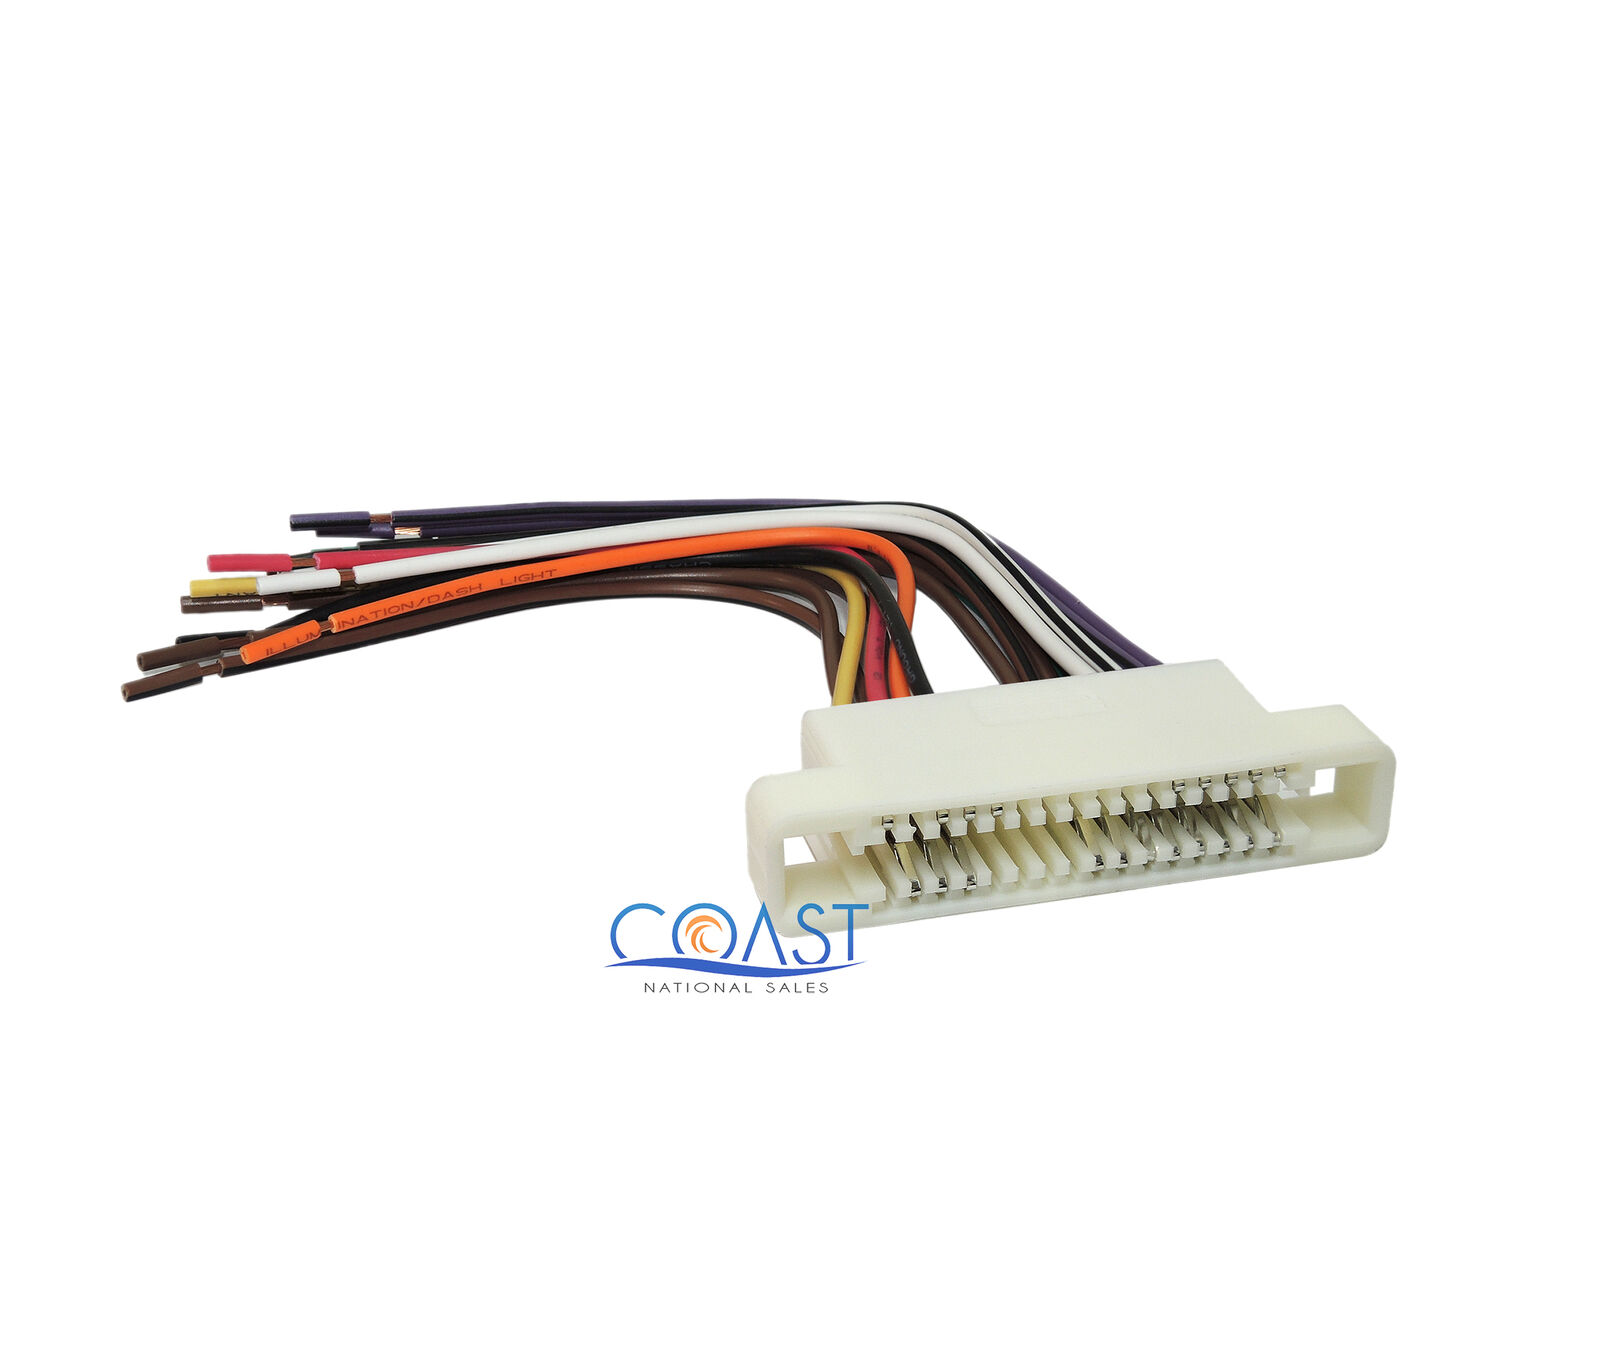 Car Radio Stereo Wiring Harness for 2000-2005 Buick LeSabre Pontiac  Bonneville 1 of 1FREE Shipping See More